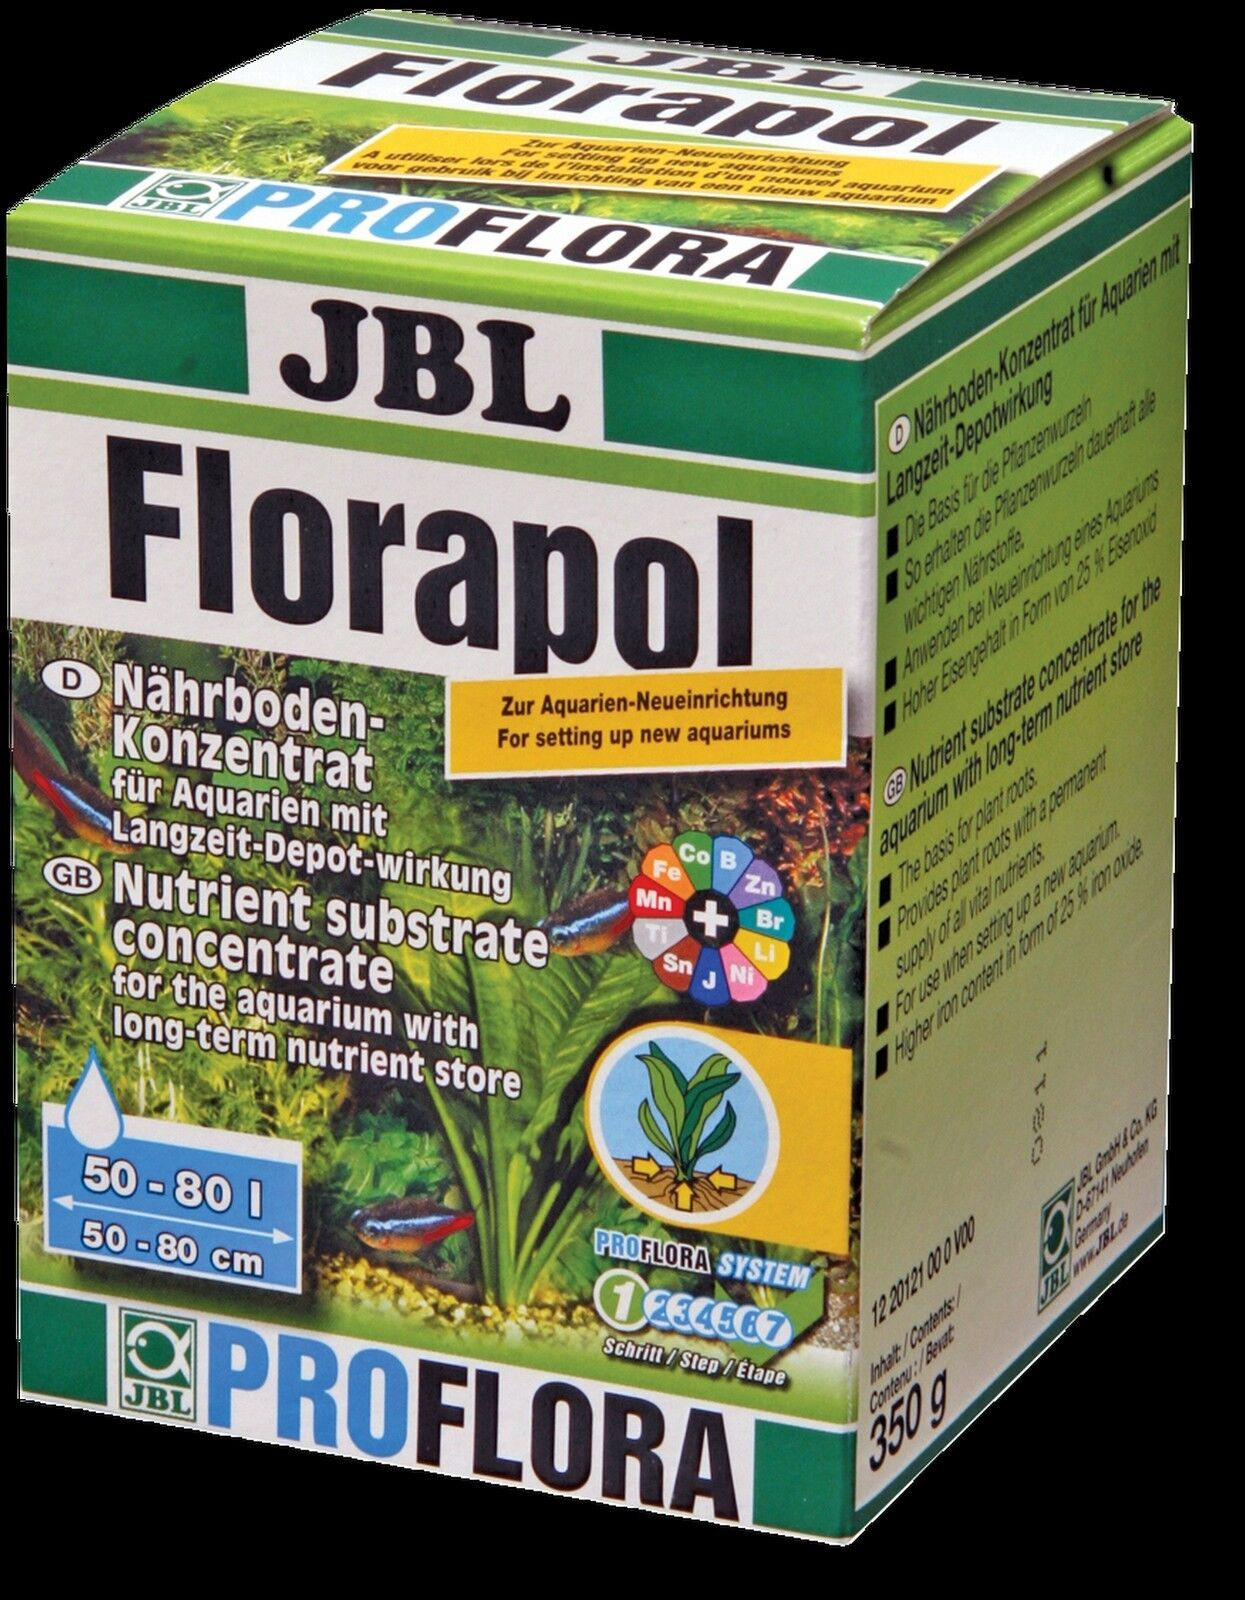 JBL Florapol 700g Nutrient Concentrate add Substrate aquarium plant fertiliser